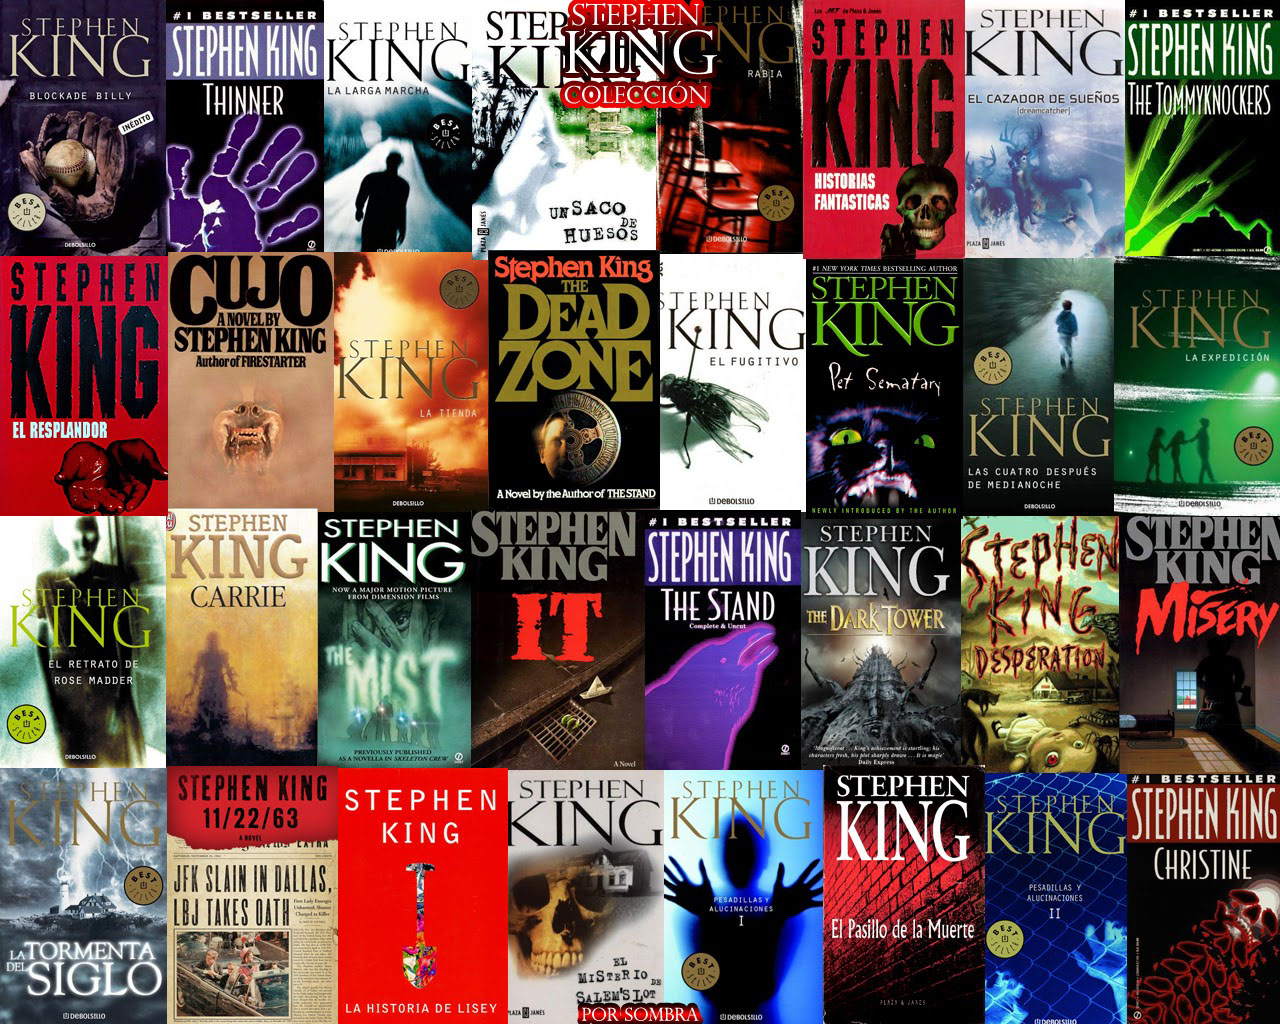 El Ultimo Libro De Stephen King Castle Black Descargar Libros De Stephen King